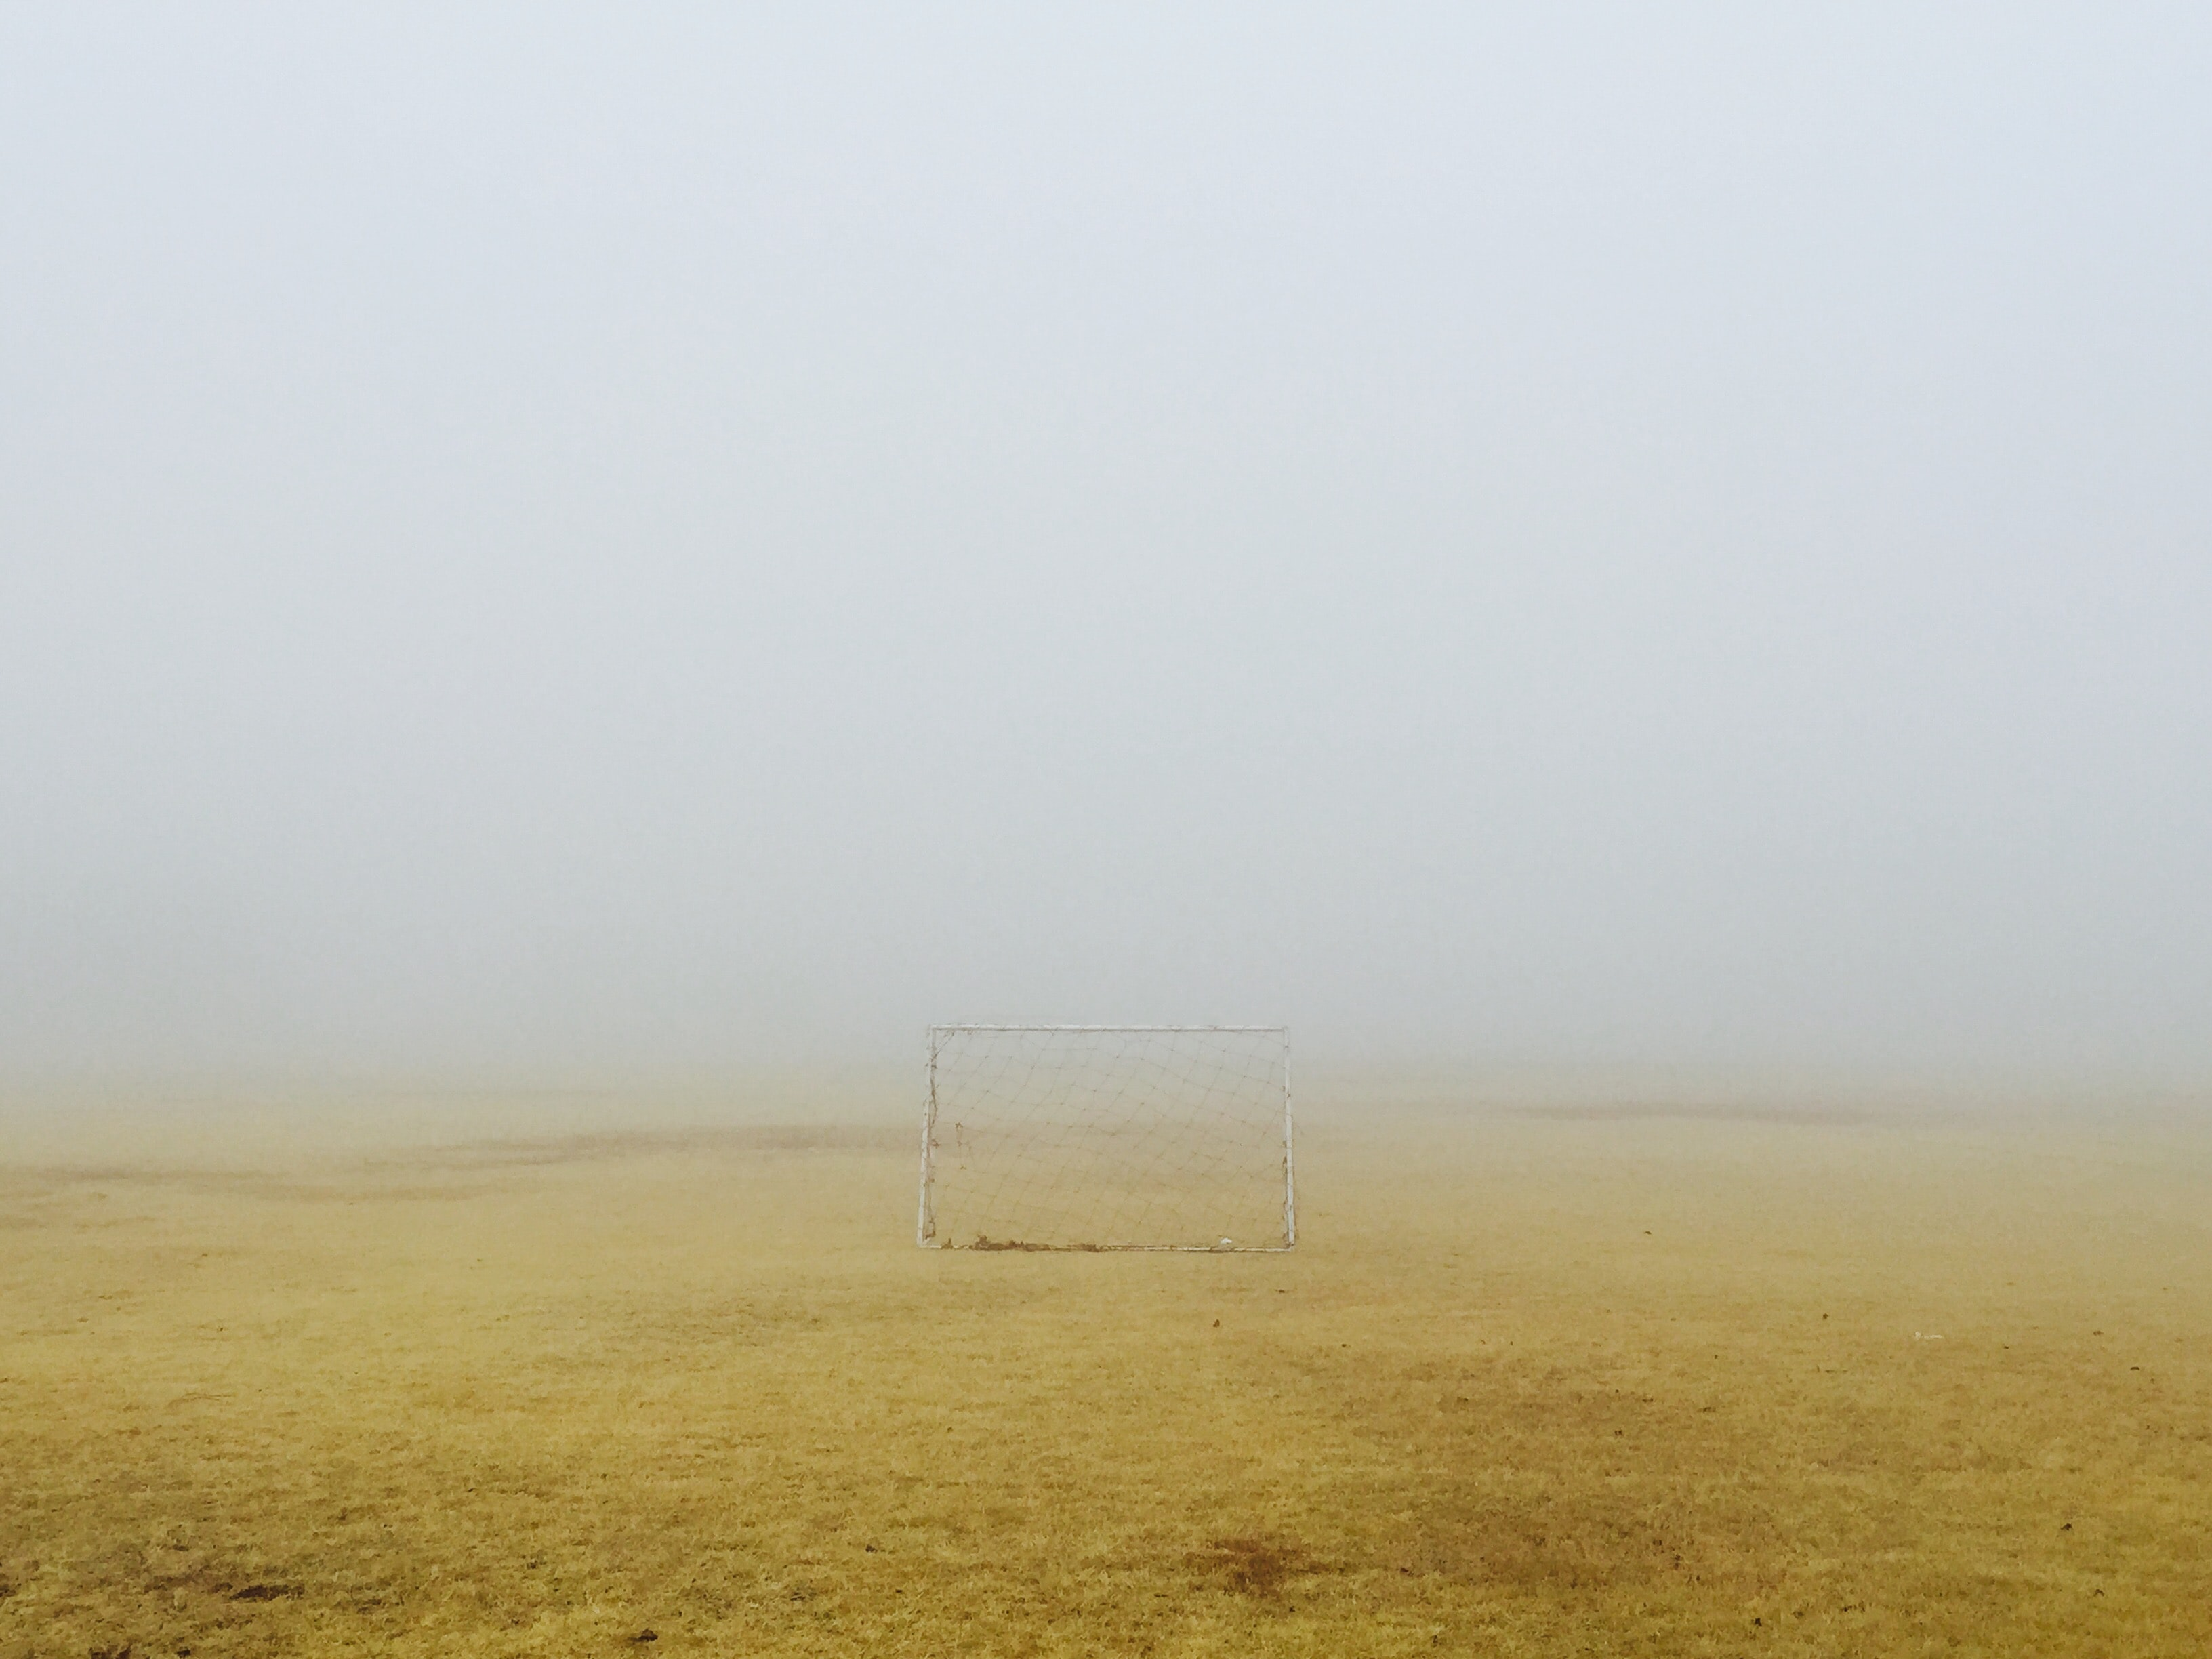 Small soccer goal sitting on the yellow scorched grass field on a foggy day